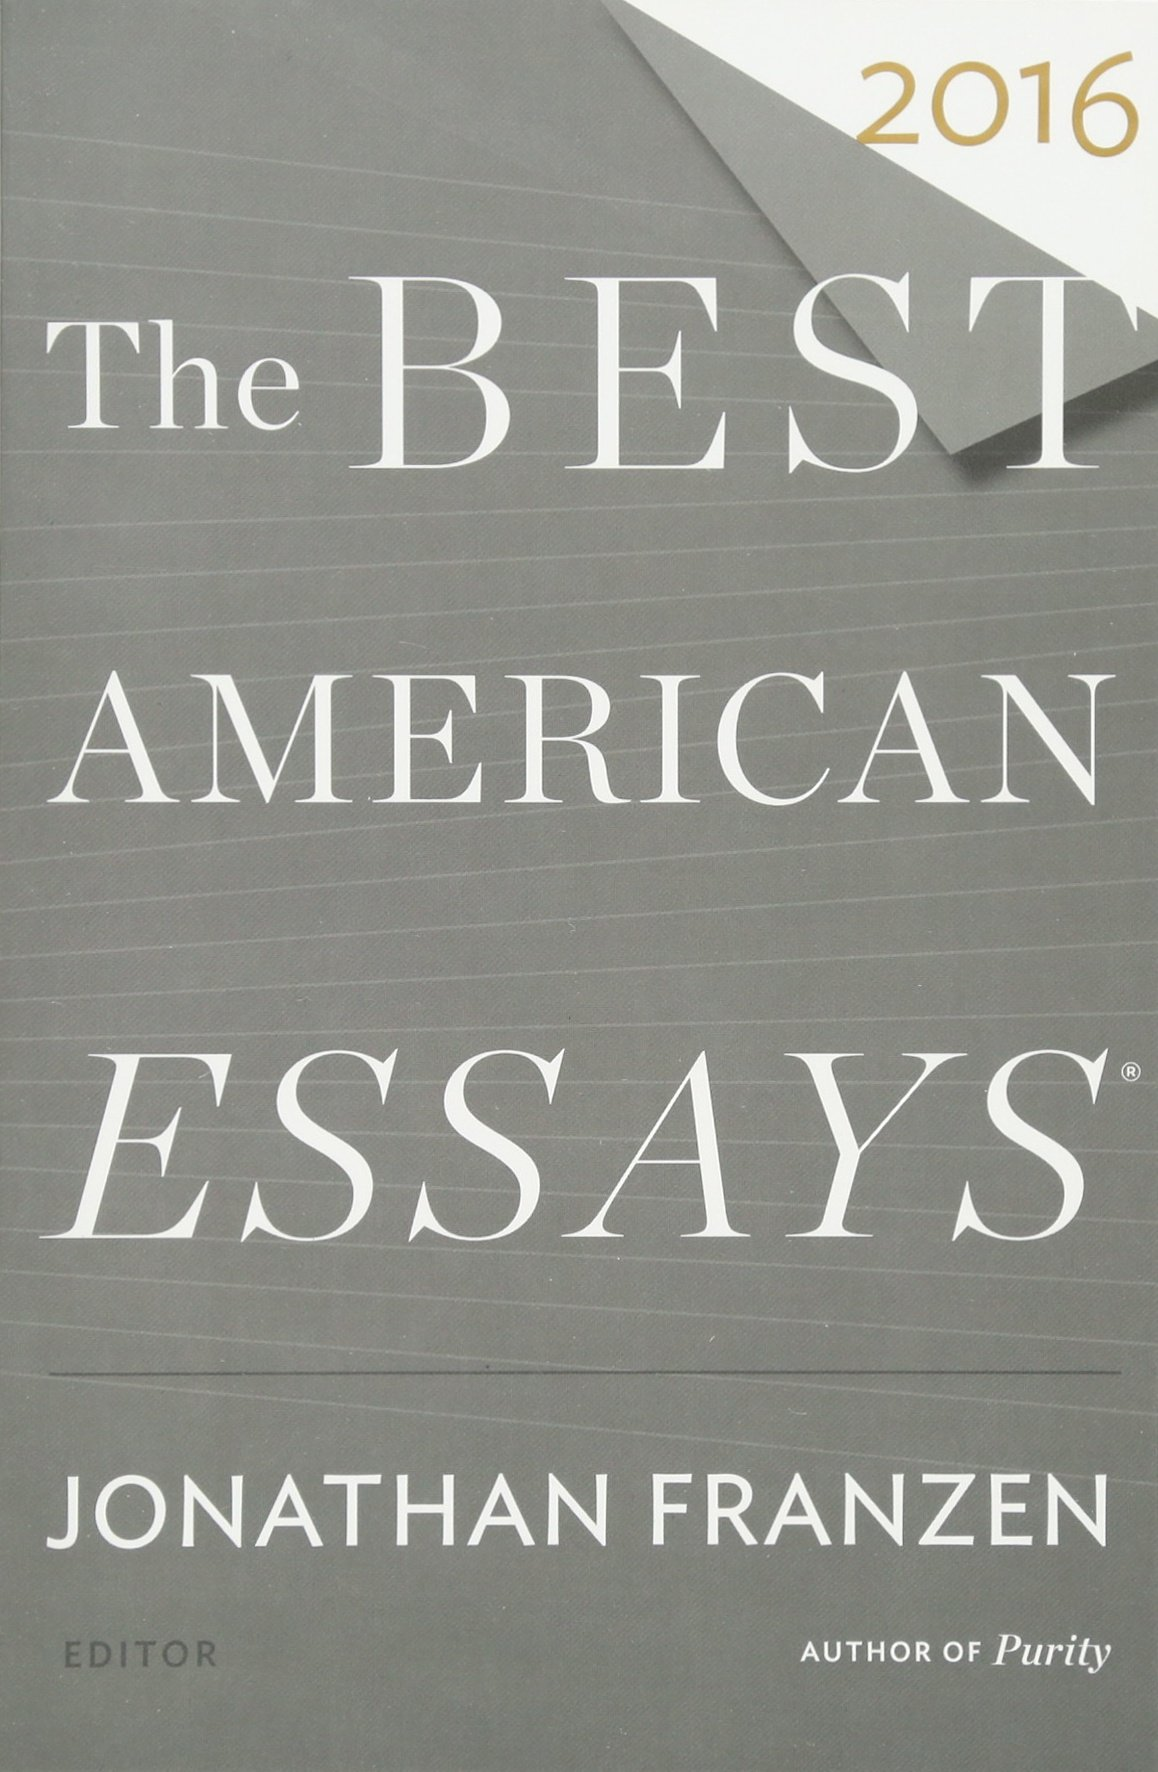 005 Best American Essays 71a6bhsgsdl Essay Striking 2017 Pdf Submissions 2019 Of The Century Table Contents Full